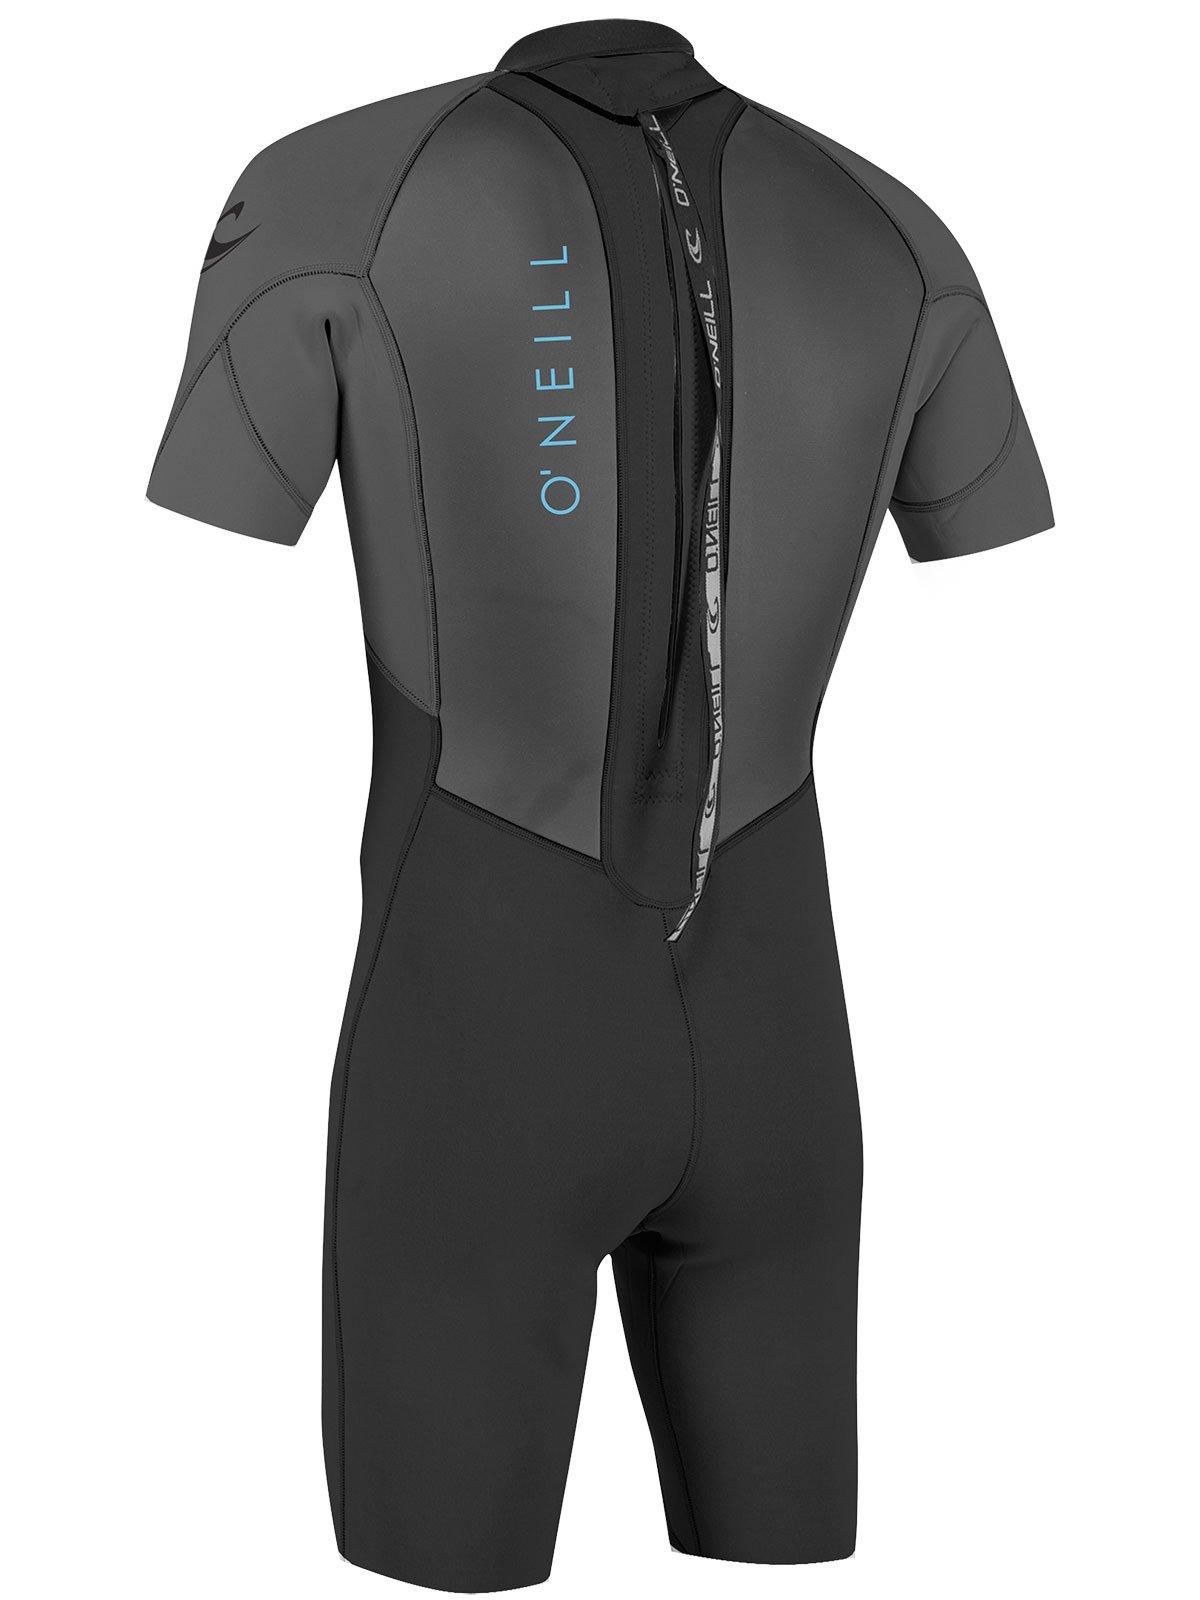 O'Neill Youth Reactor-2 2mm Back Zip Short Sleeve Spring Wetsuit, Black/Graphite, 4 by O'Neill Wetsuits (Image #3)